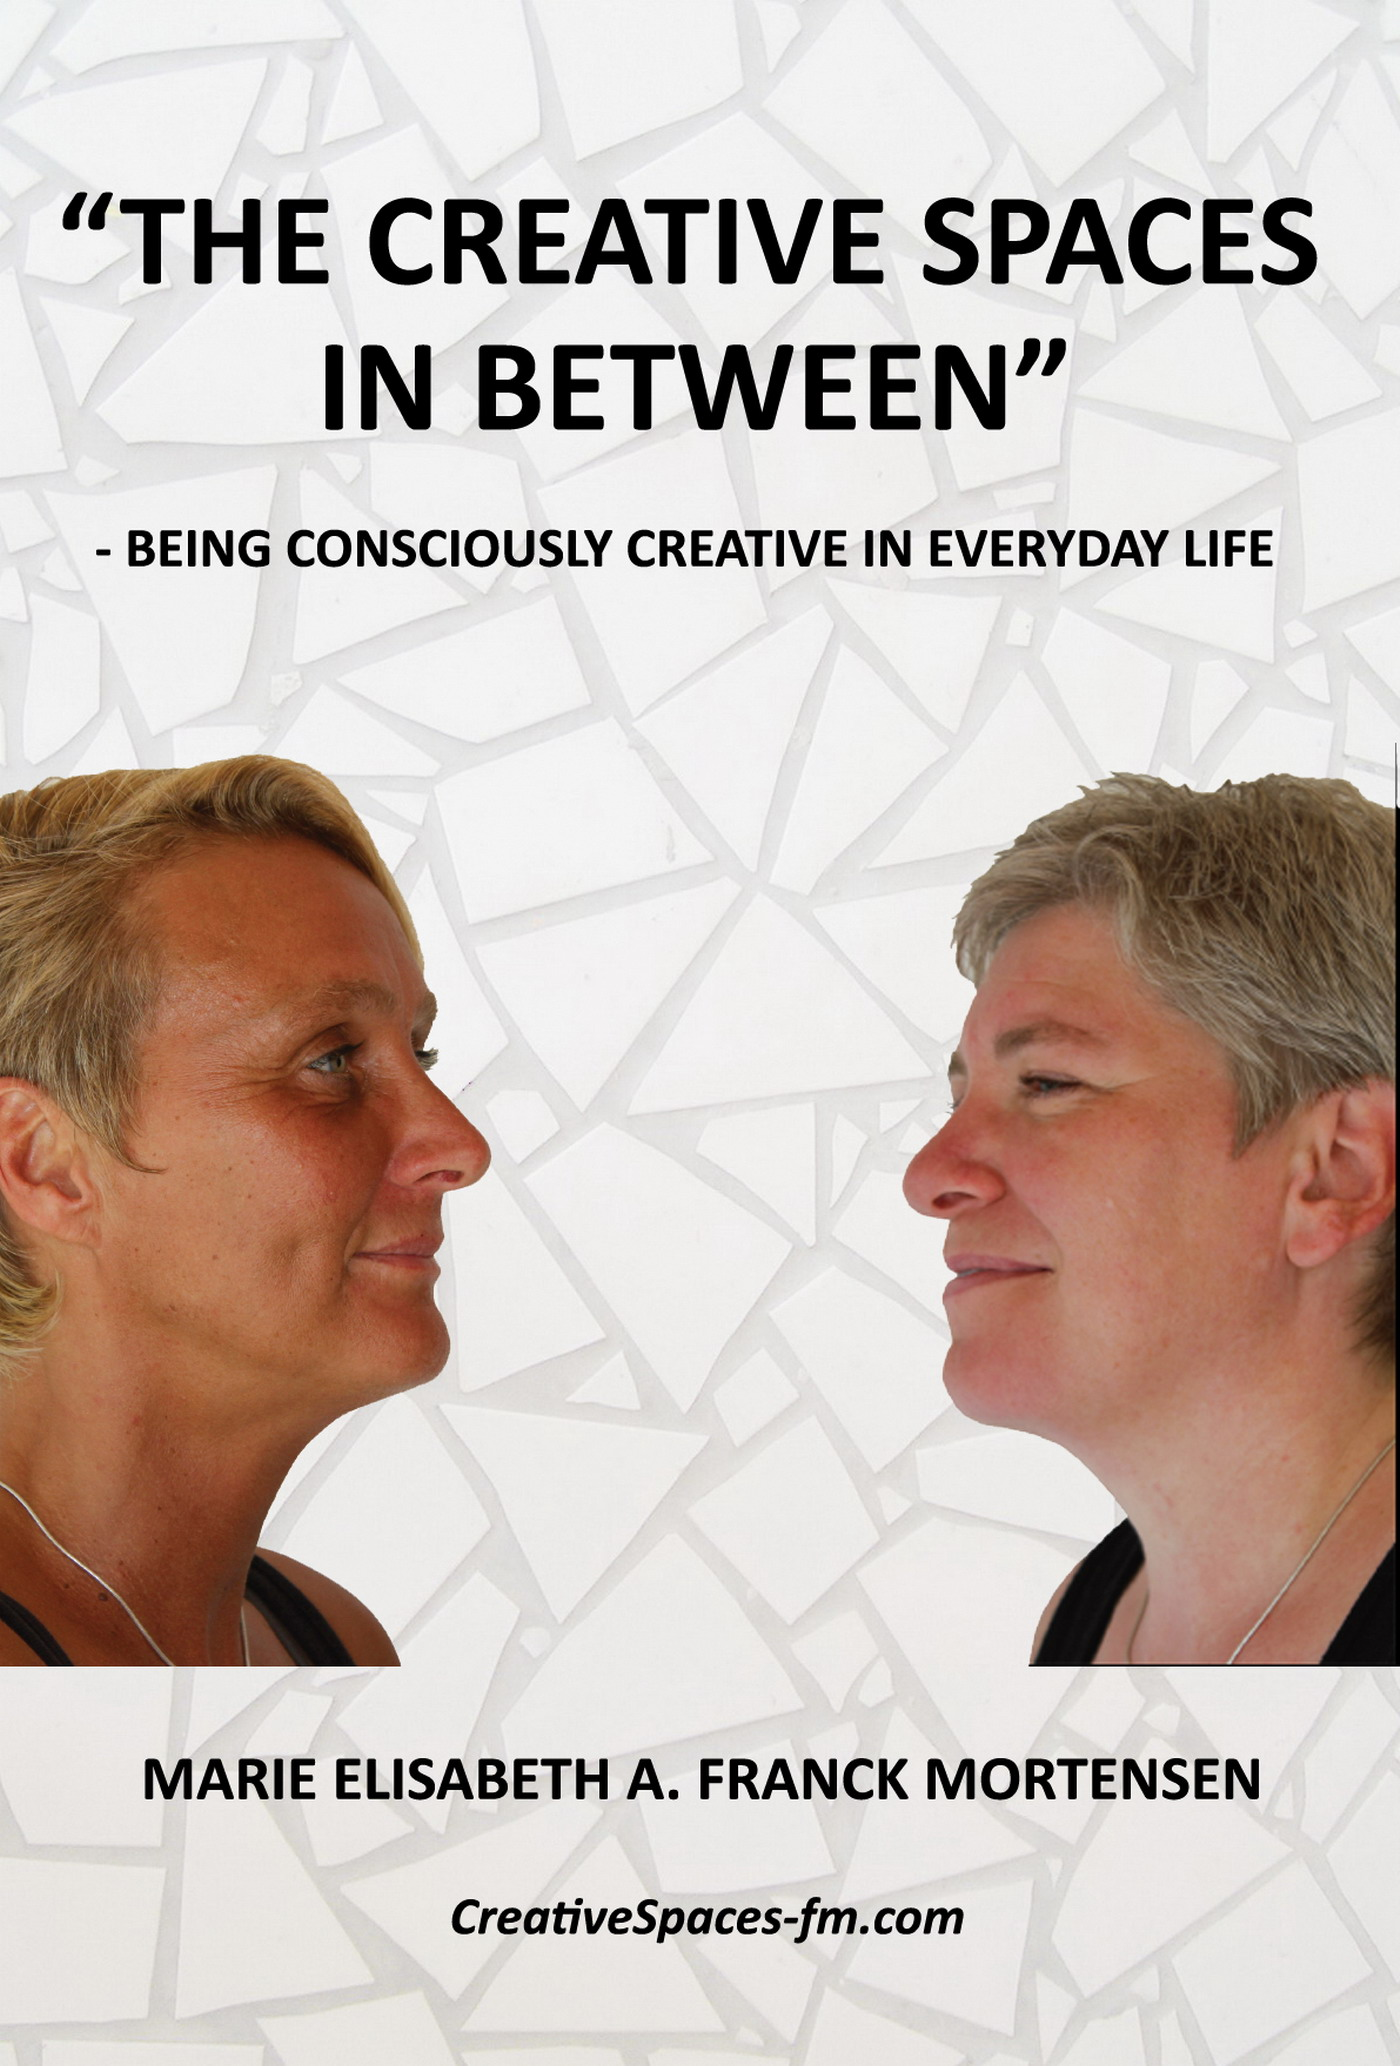 eBook: The Creative Spaces in Between - Being Consciously Creative in Everyday Life - by Marie Elisabeth A. Franck Mortensen, CreativeSpaces-fm.com